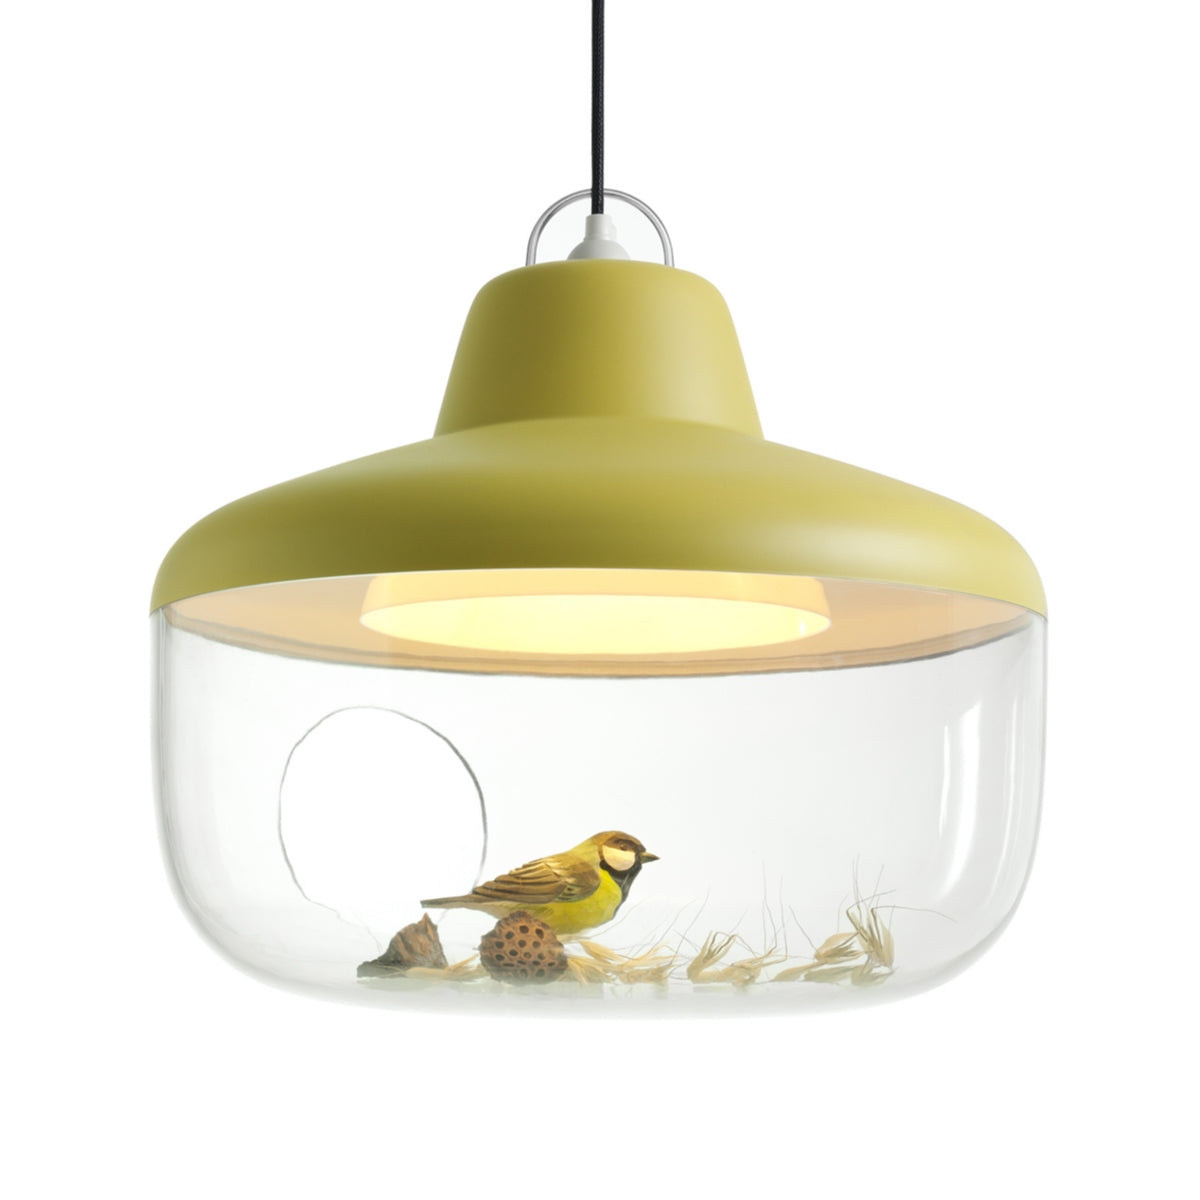 Favorite Things Pendant Lamp: Mustard Yellow